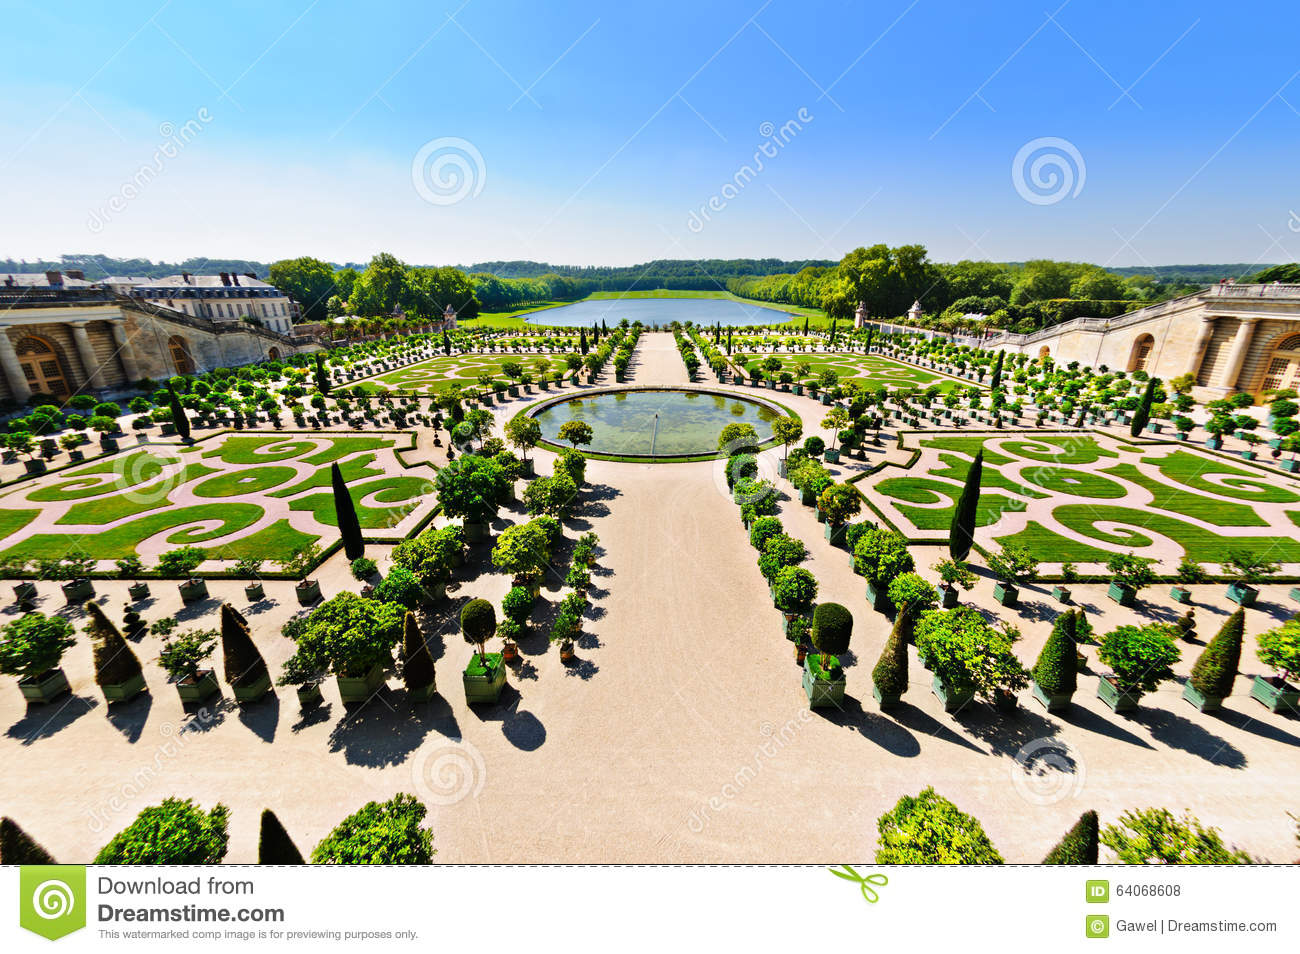 Le jardin de versailles paris france photo stock image for France jardin